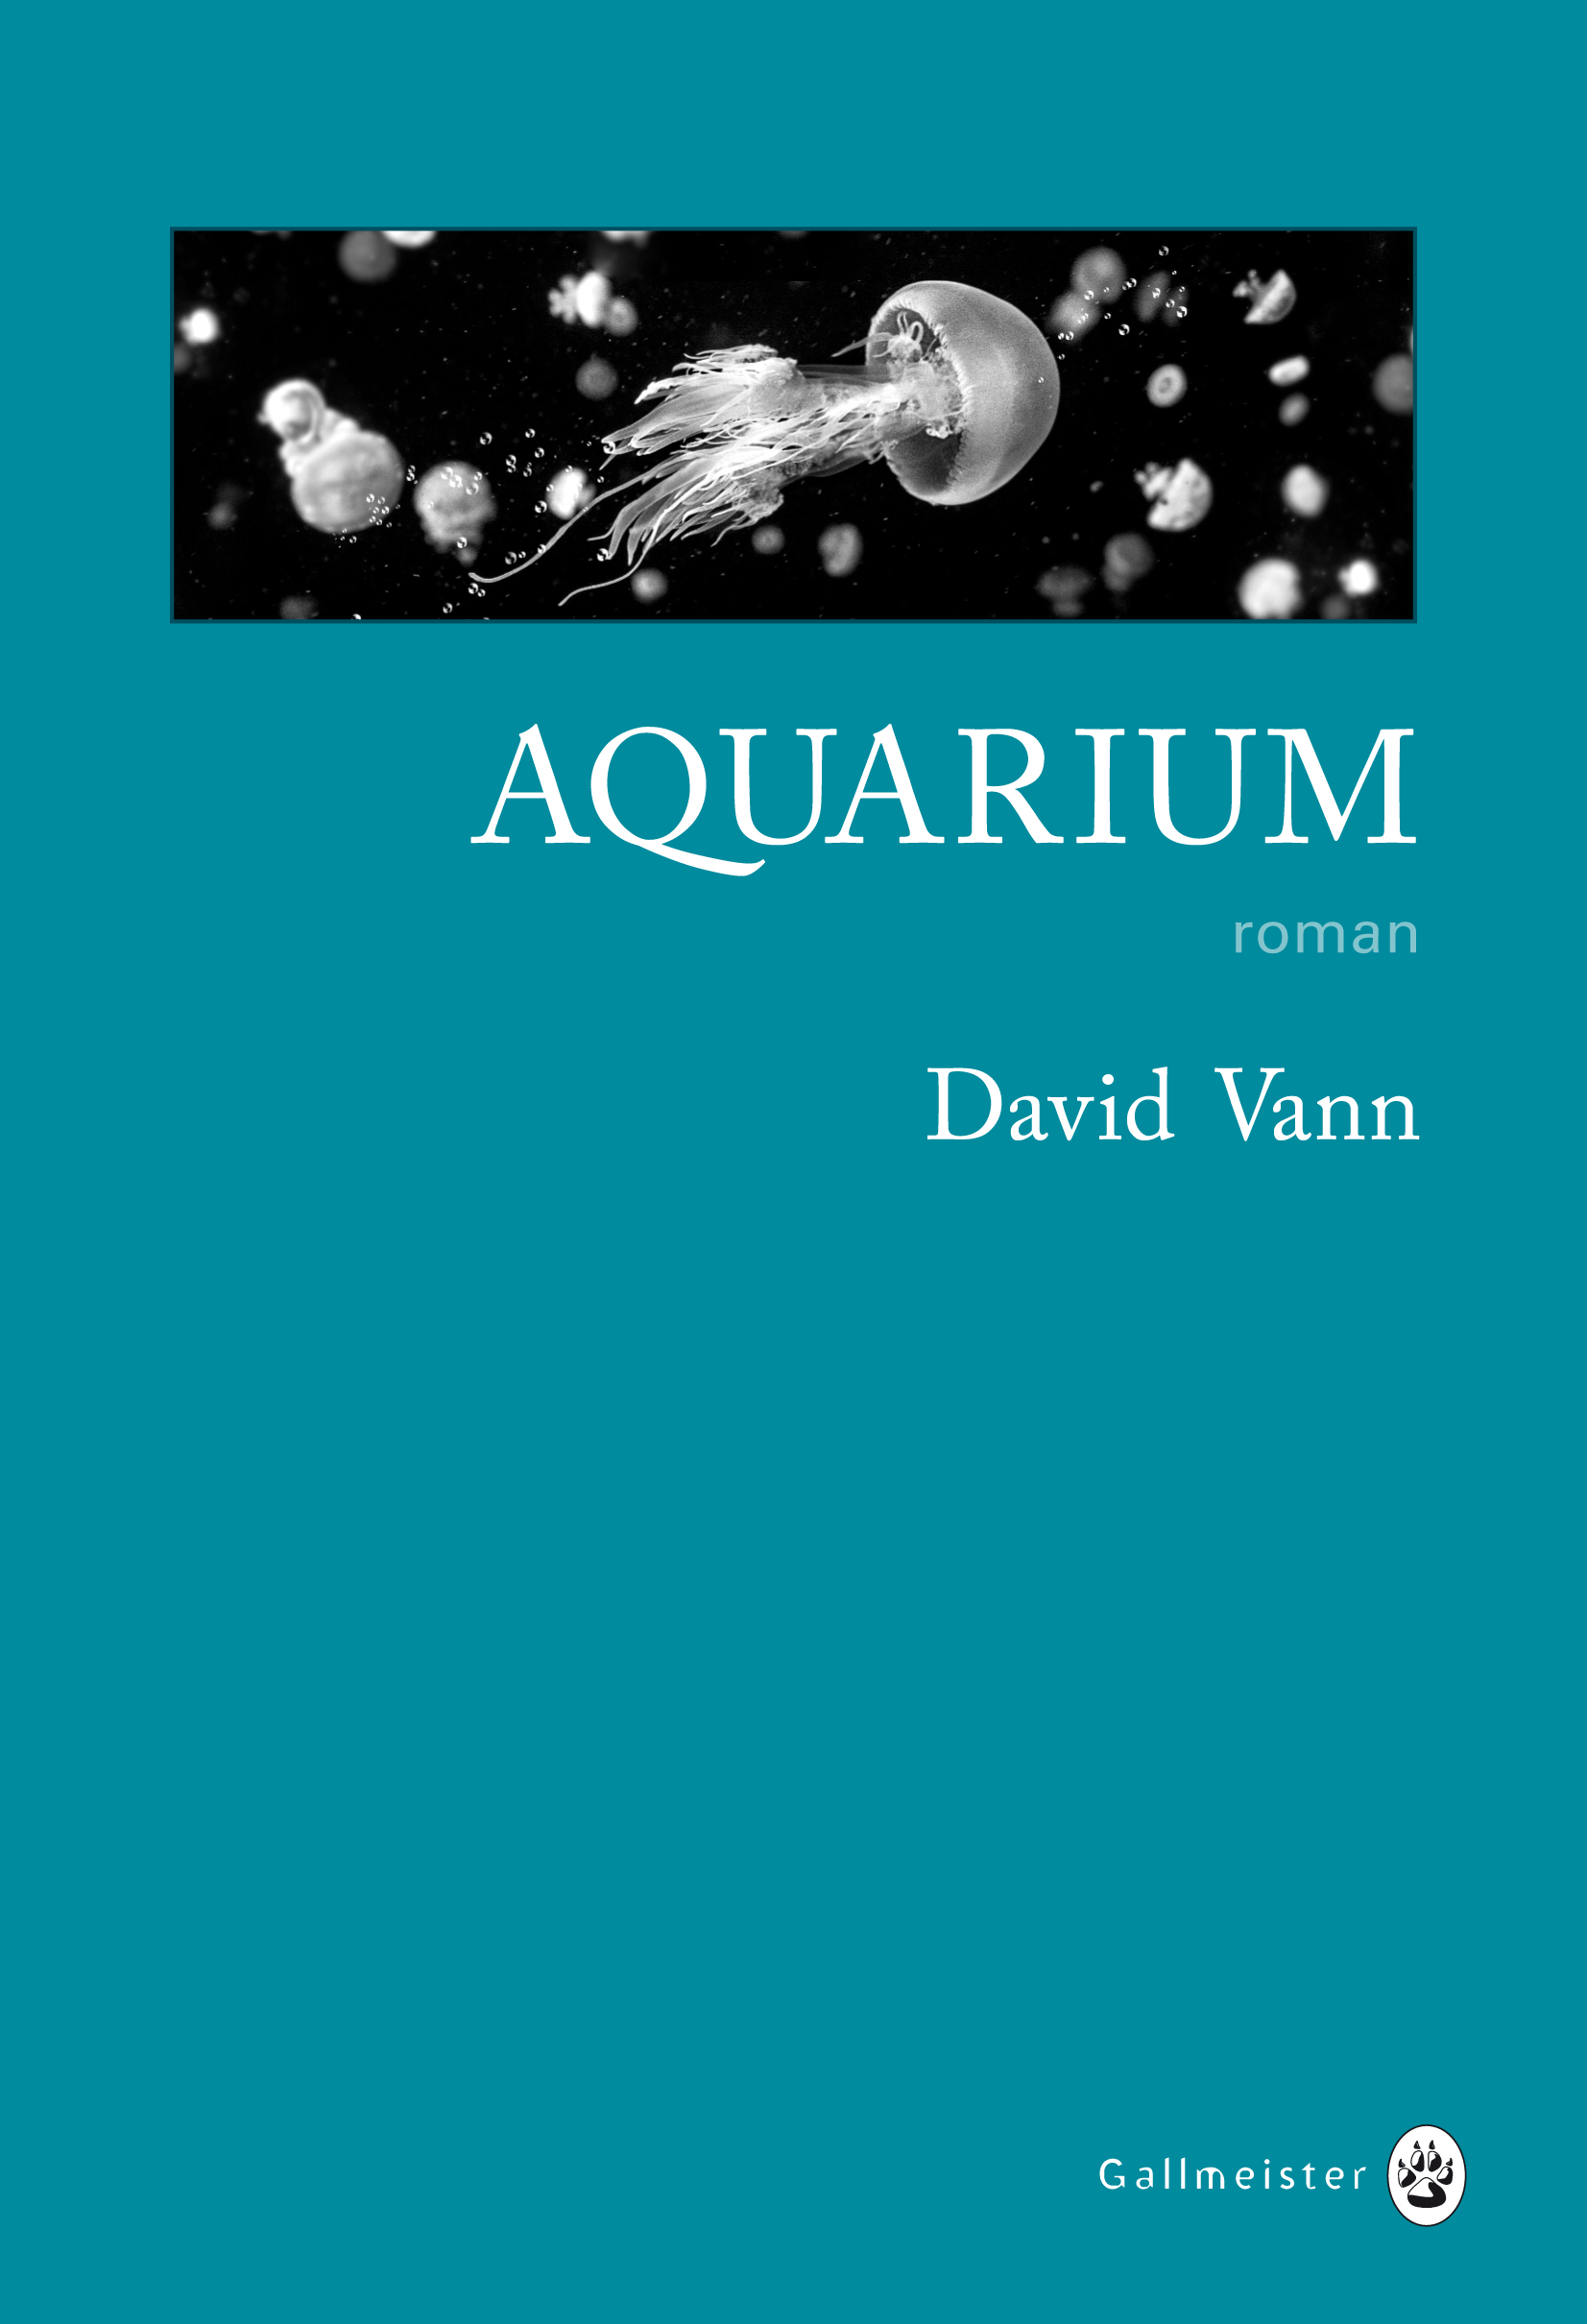 Aquarium- David Vann - Editions Gallmeister